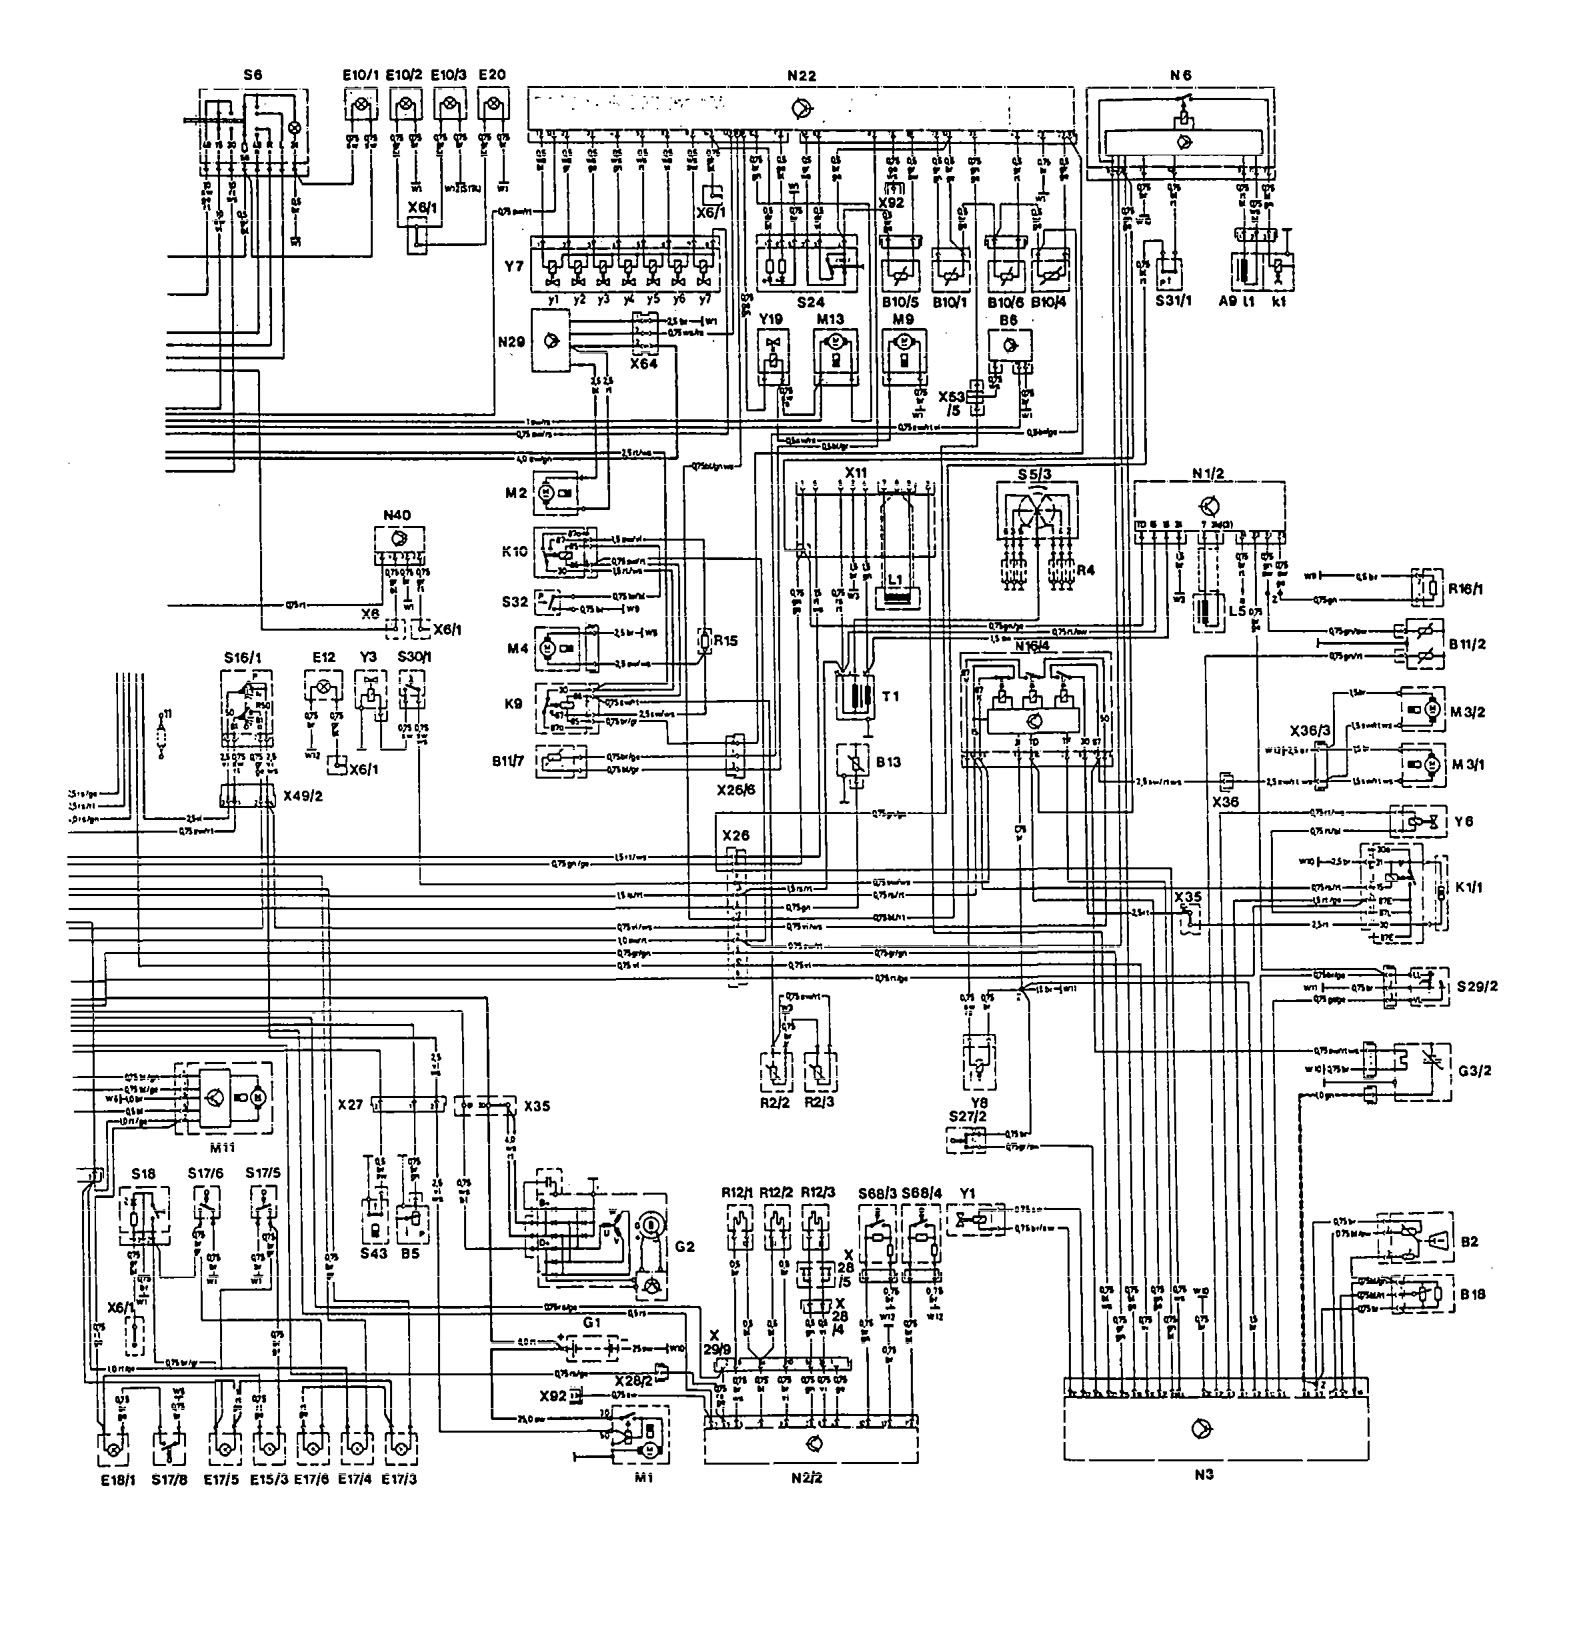 mercedes benz 300e 1992 1993 wiring diagrams instrumentation rh carknowledge info Ignition Switch Wiring Diagram F250 Wiring Diagram